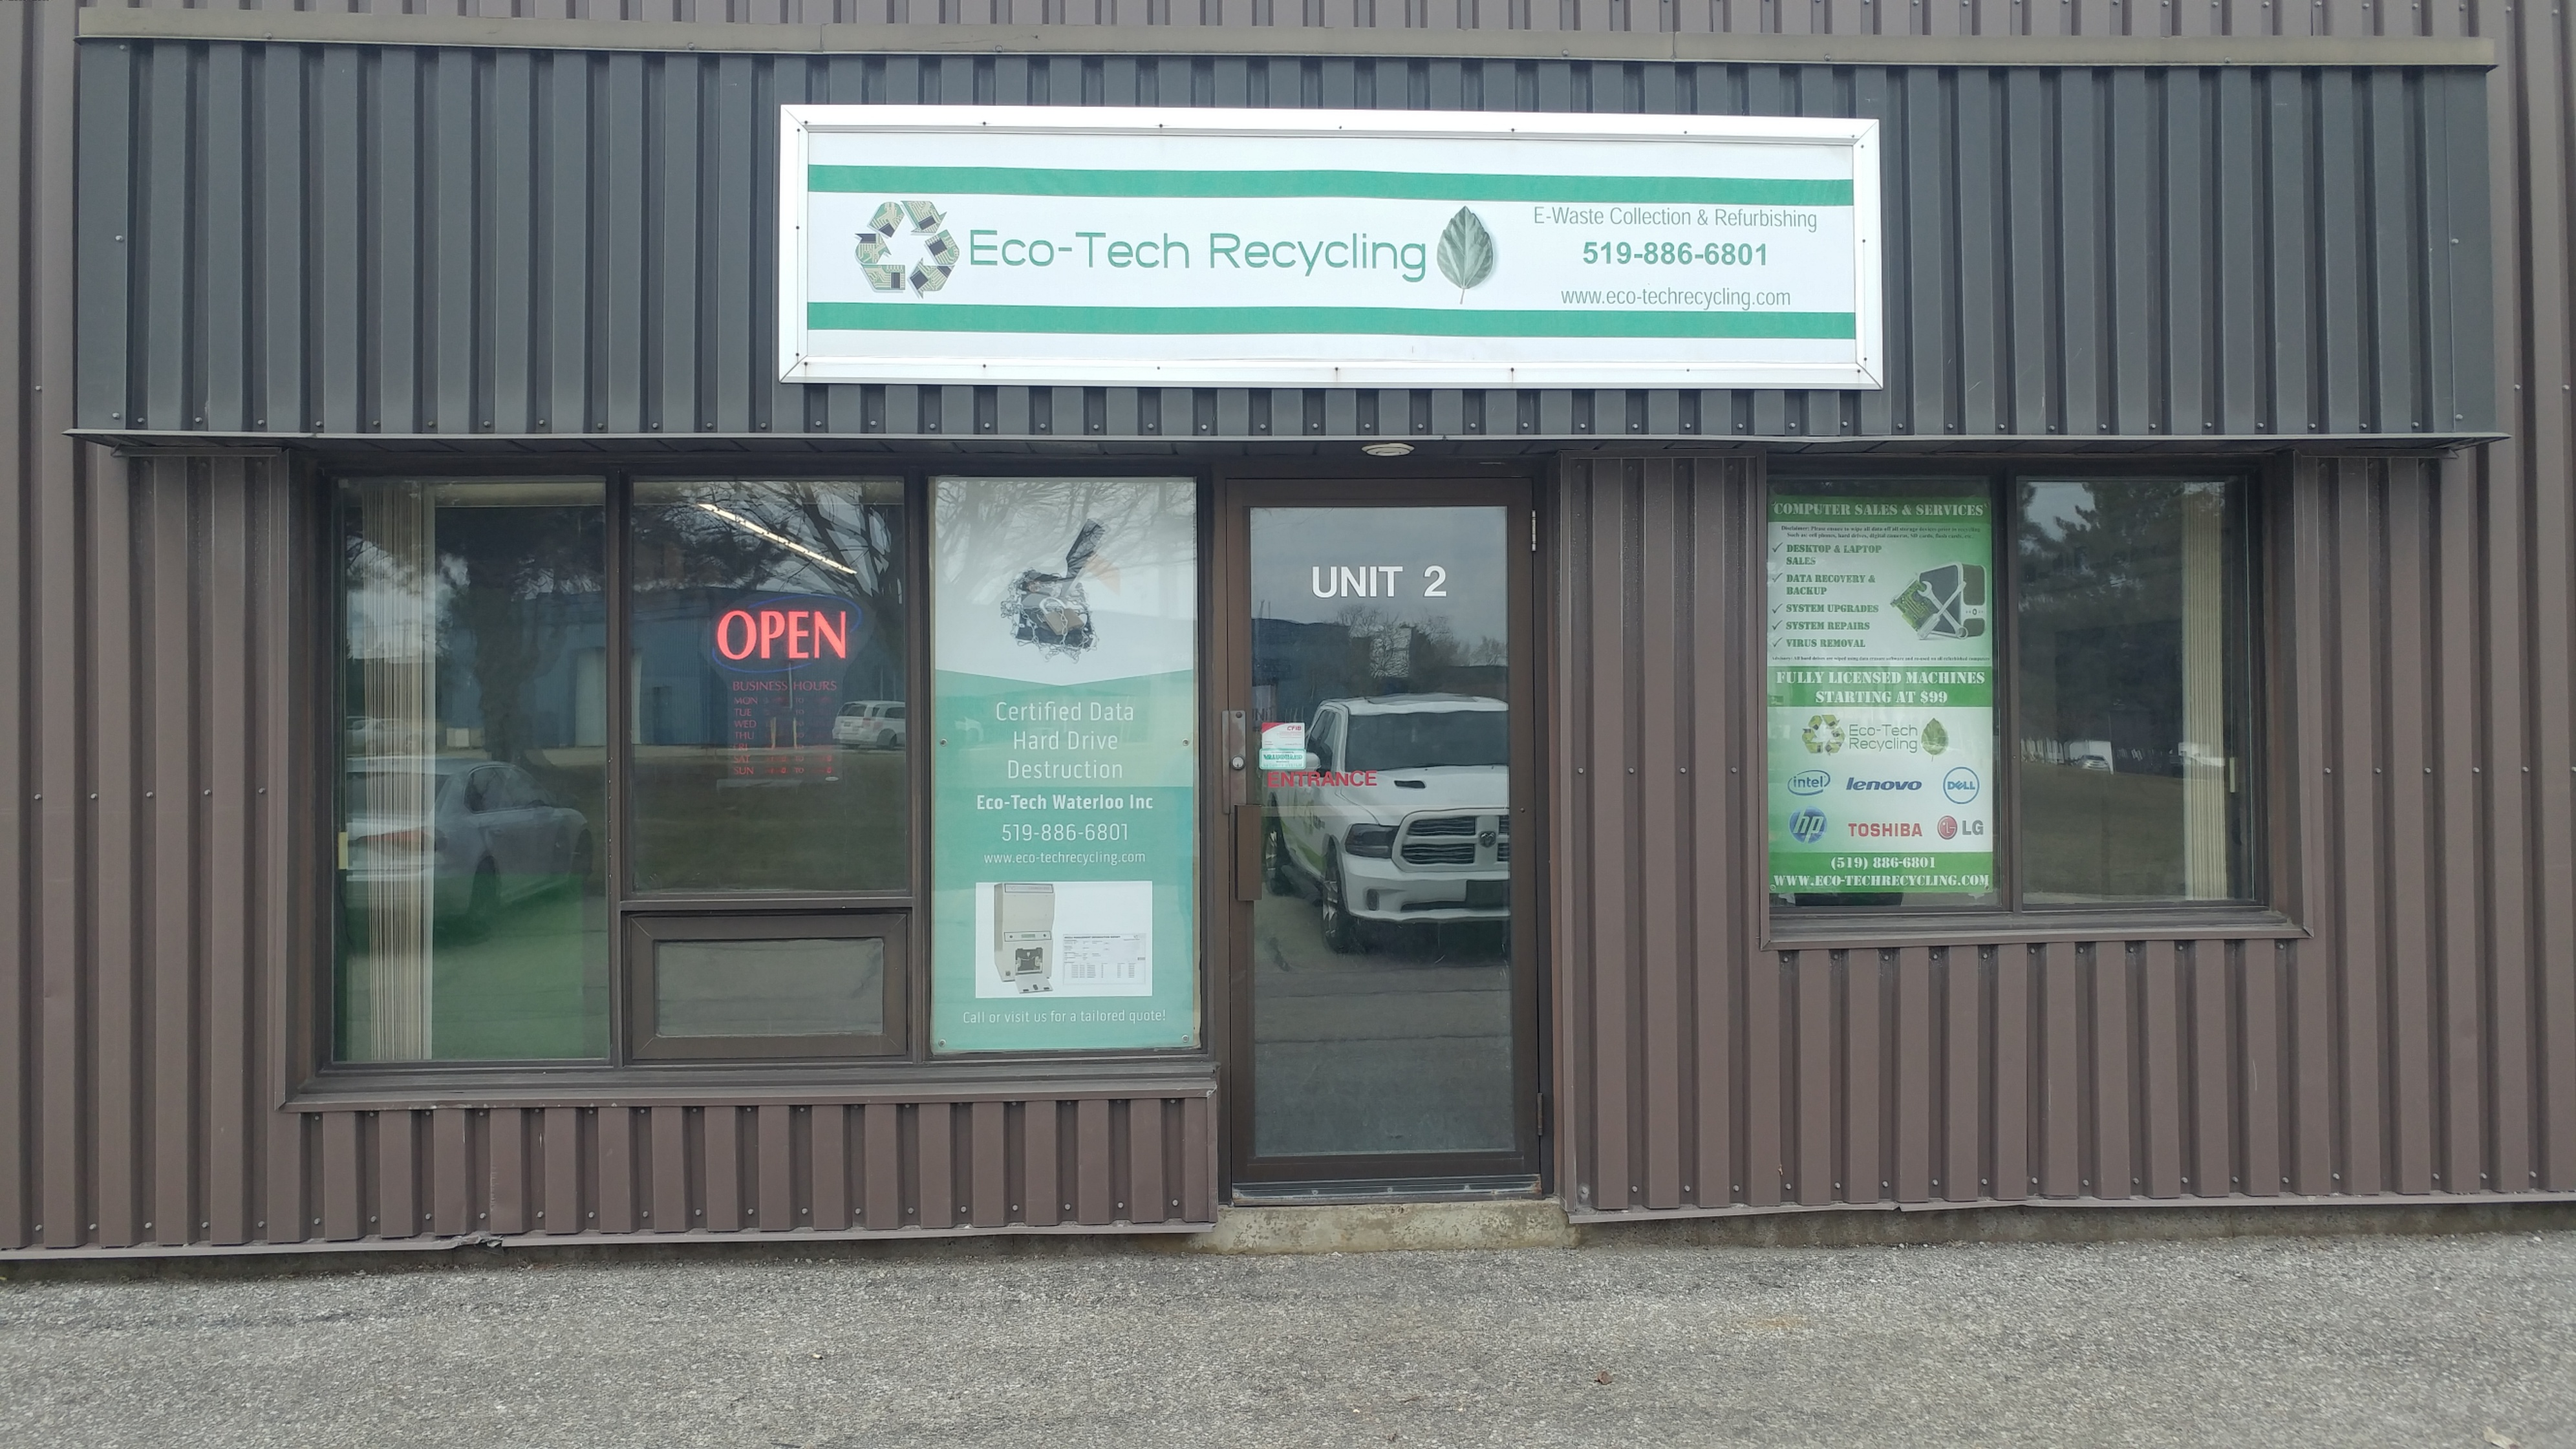 E-waste recycling, certified destruction, refurbished computers